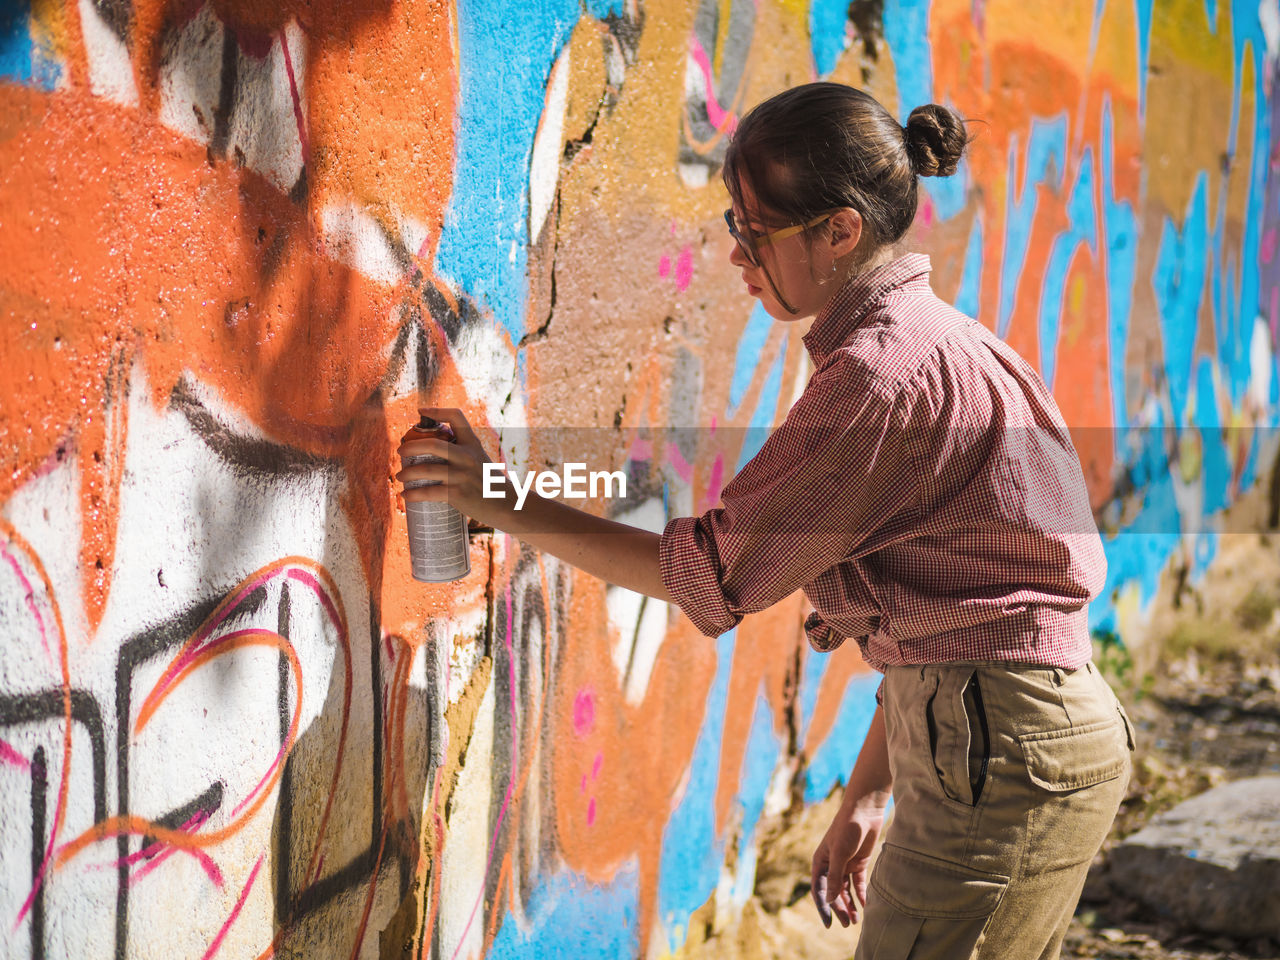 Side View Of Young Woman Spraying Graffiti On Wall